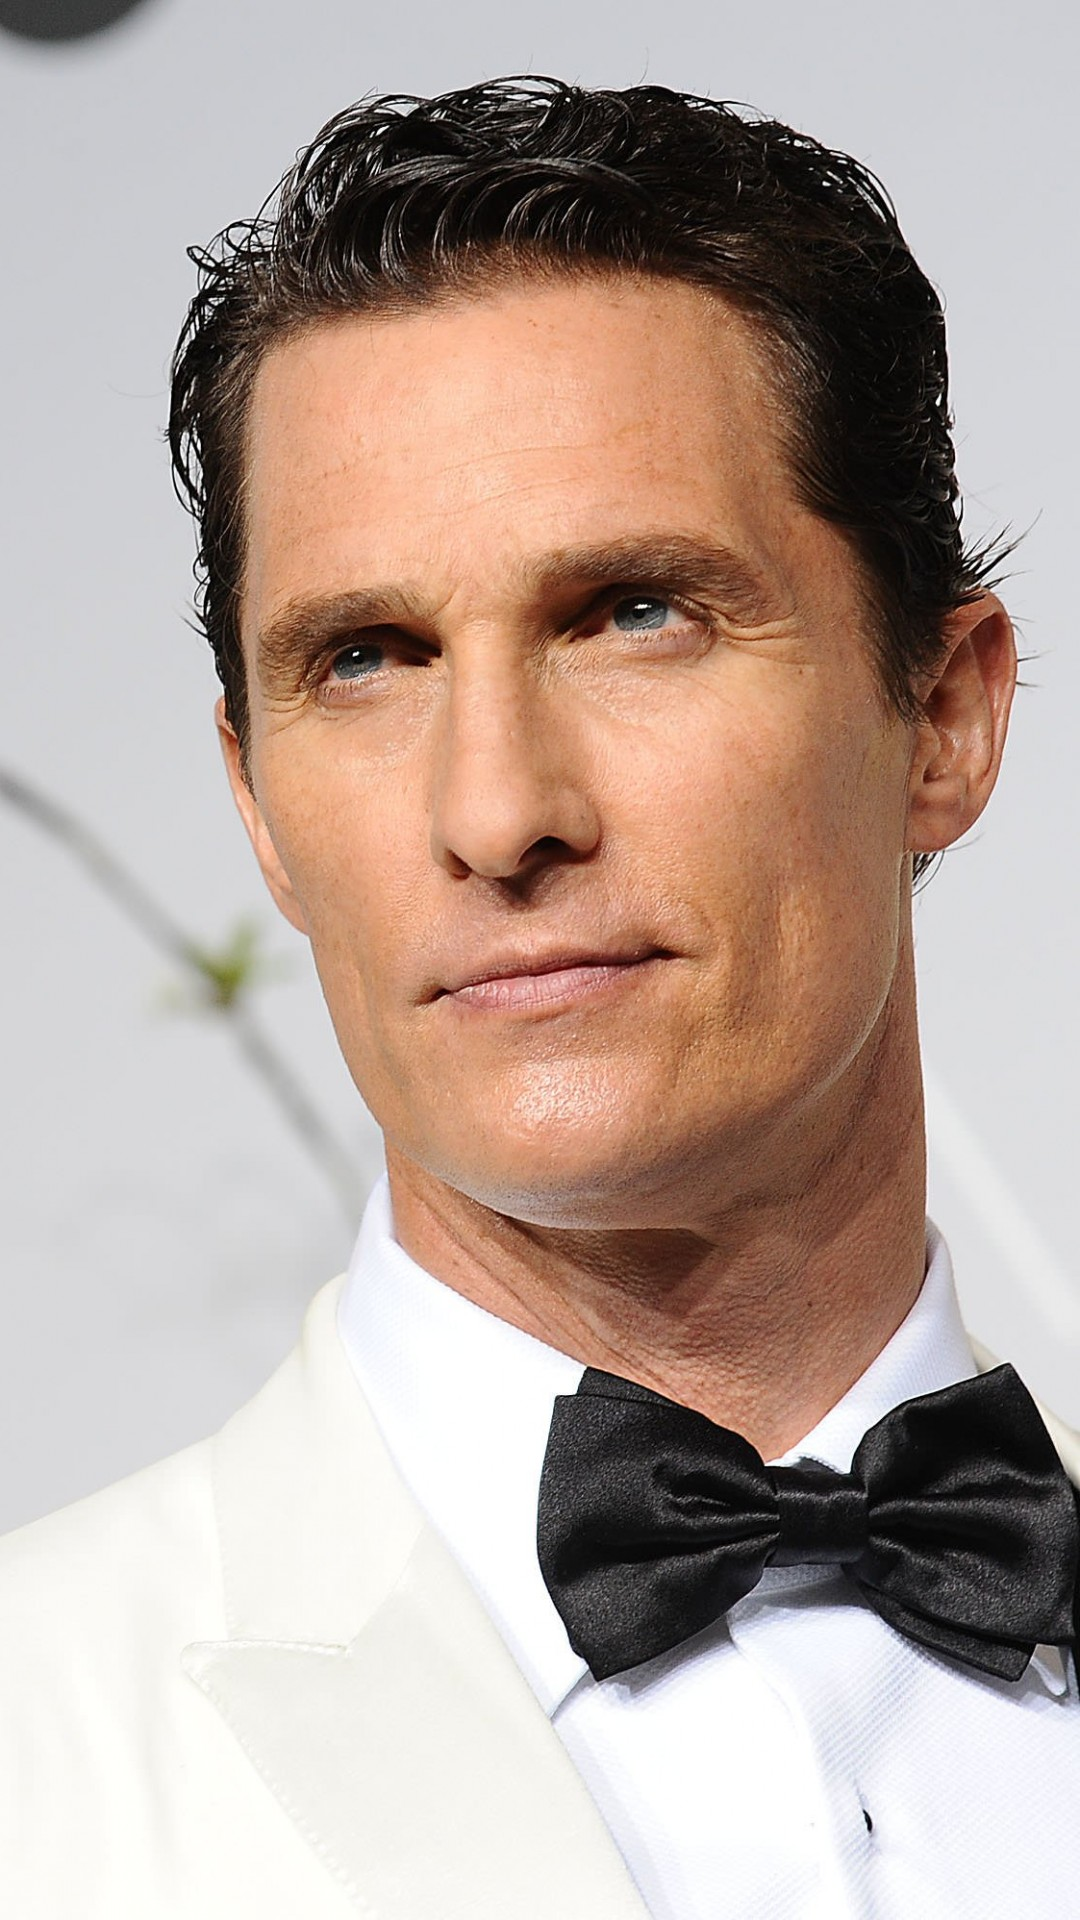 Matthew Mcconaughey in White Tuxedo Wallpaper for SAMSUNG Galaxy S5